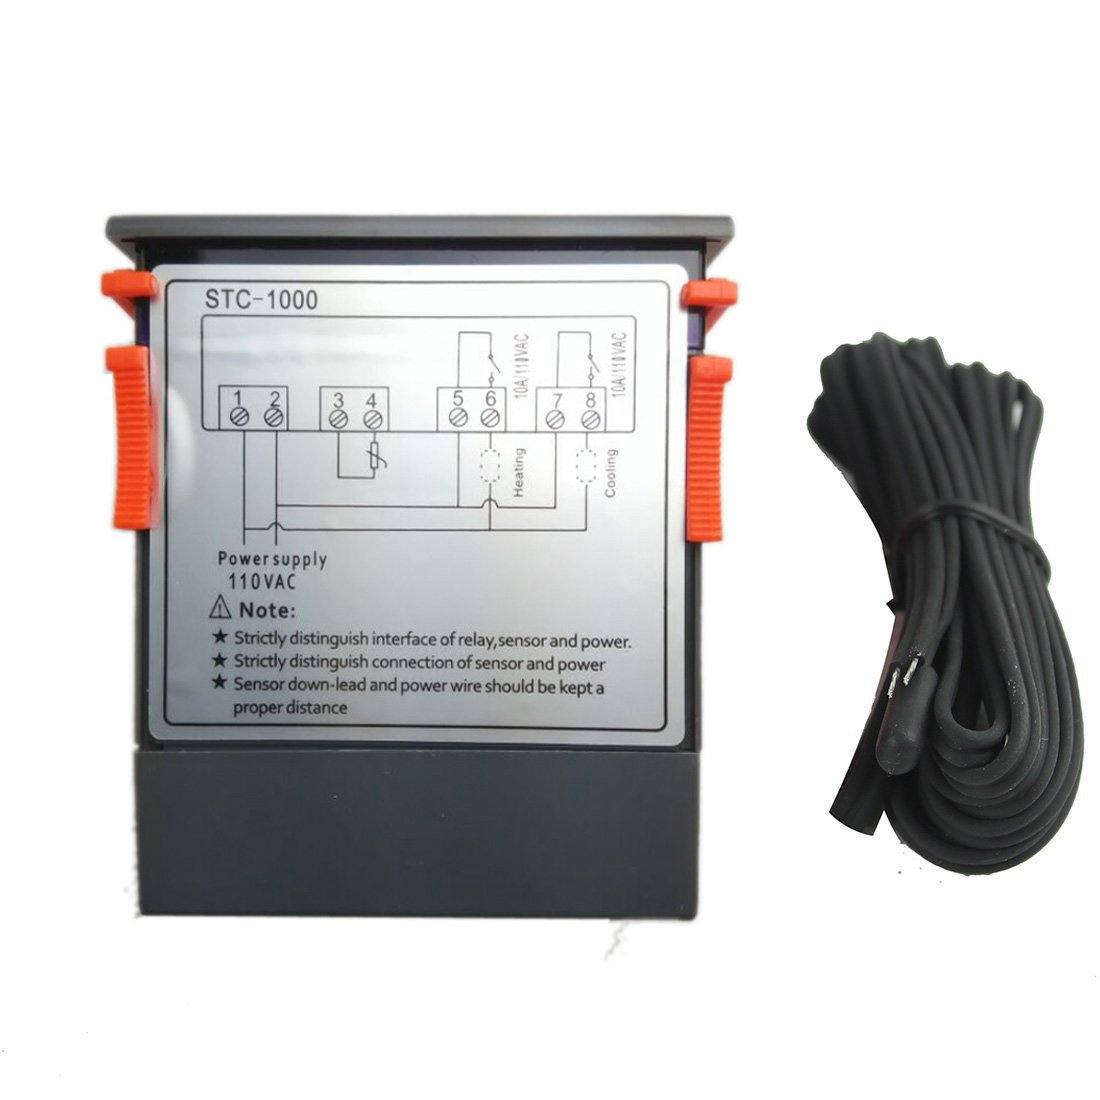 61MDHmWXvsL._SL1100_ lerway 110v all purpose temperature controller sensor 2 relay 4 Pin Relay Wiring Diagram at edmiracle.co